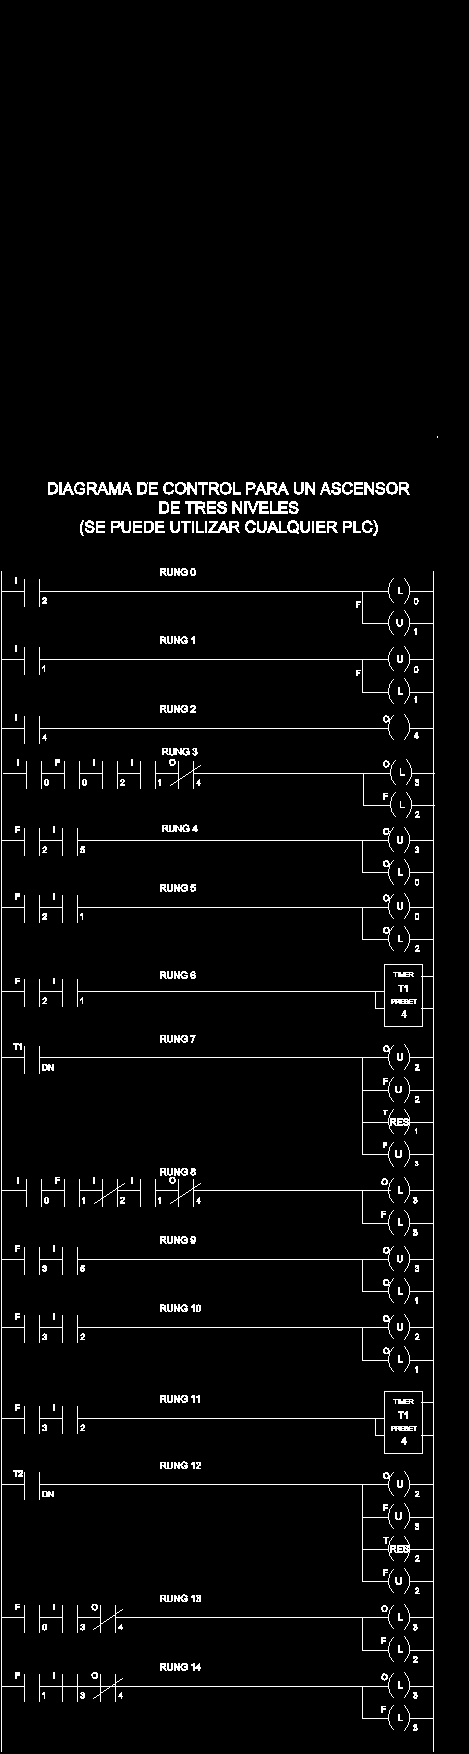 Plc computerized elevator control schematic ladder diagram dwg additional screenshots ccuart